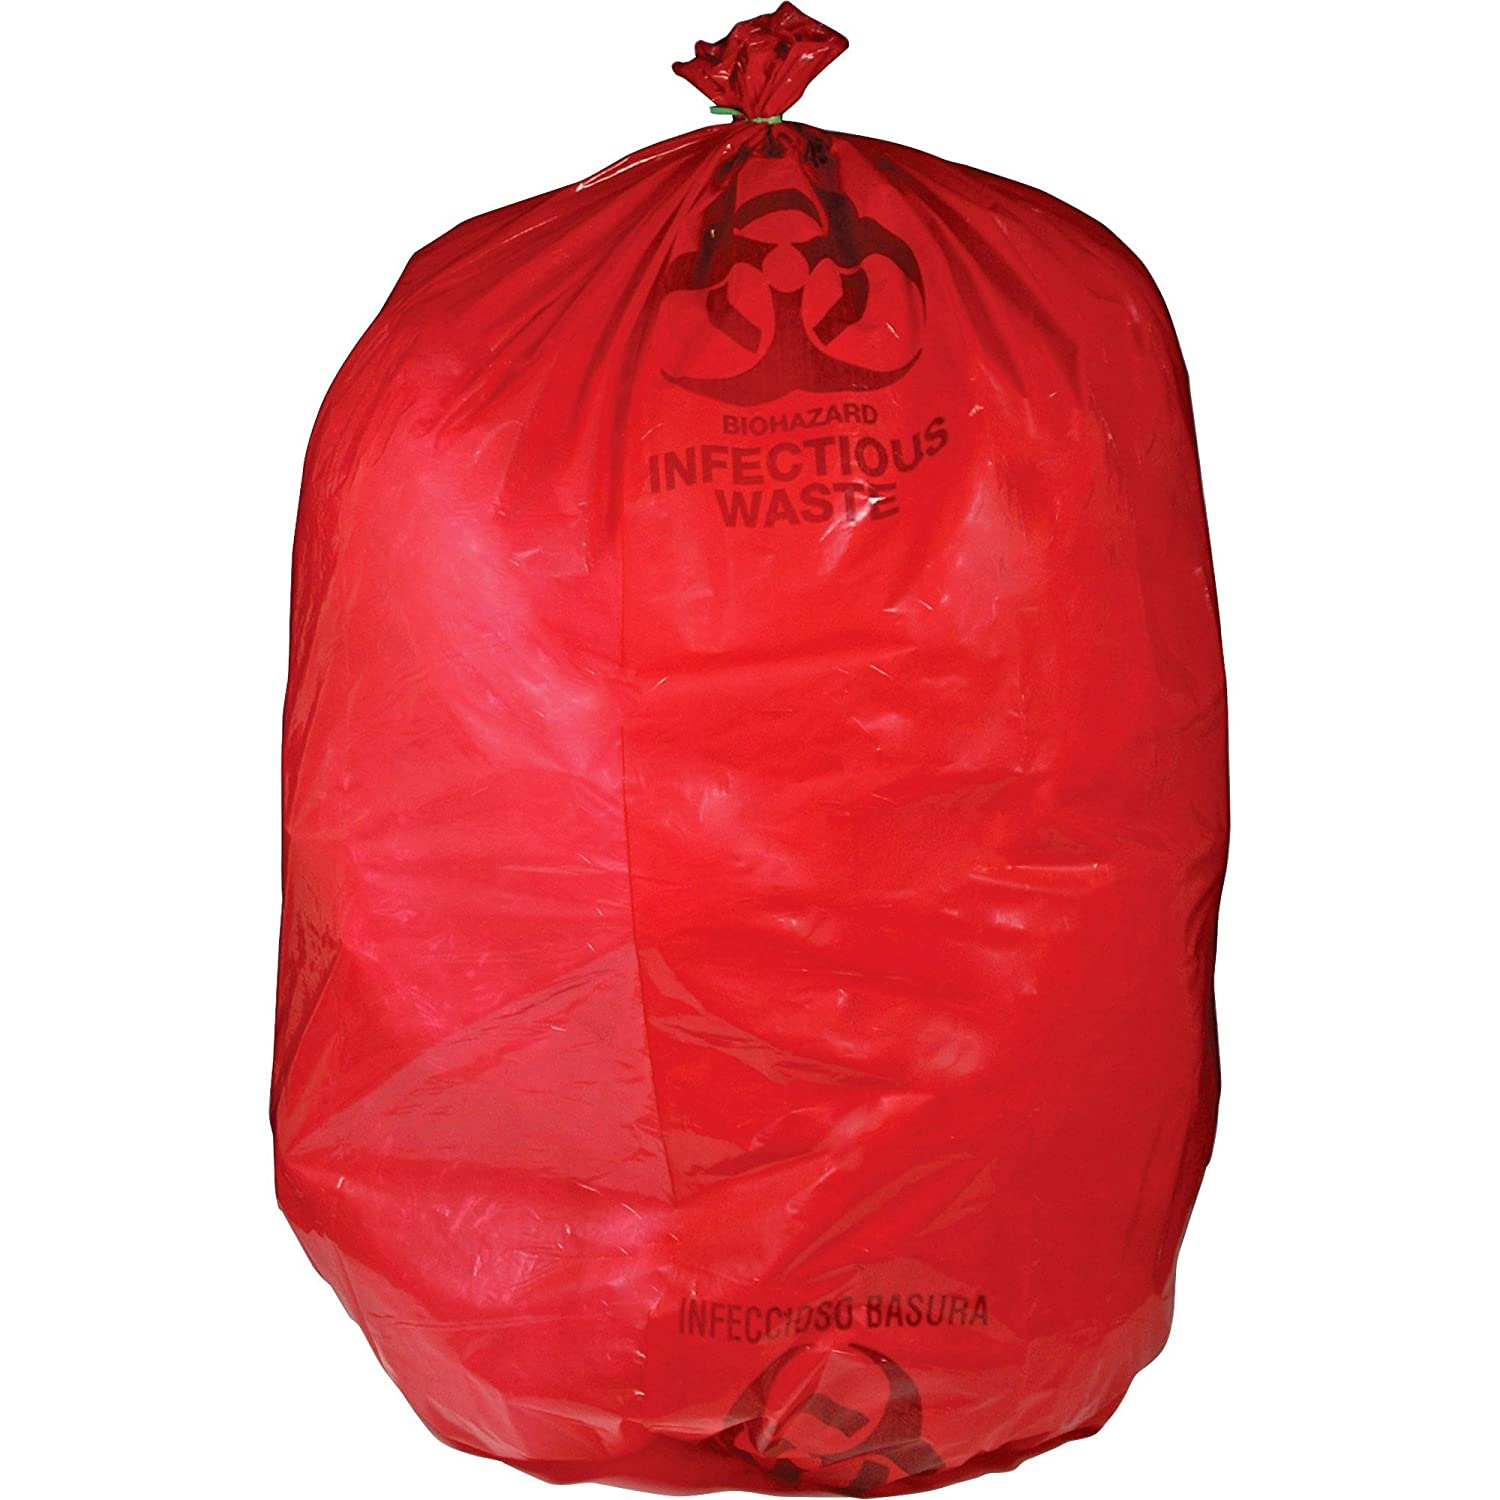 UMIRIWB142143 - Biohazard Waste Bag Red 50 National products 30-33 Gallon Max 47% OFF BX